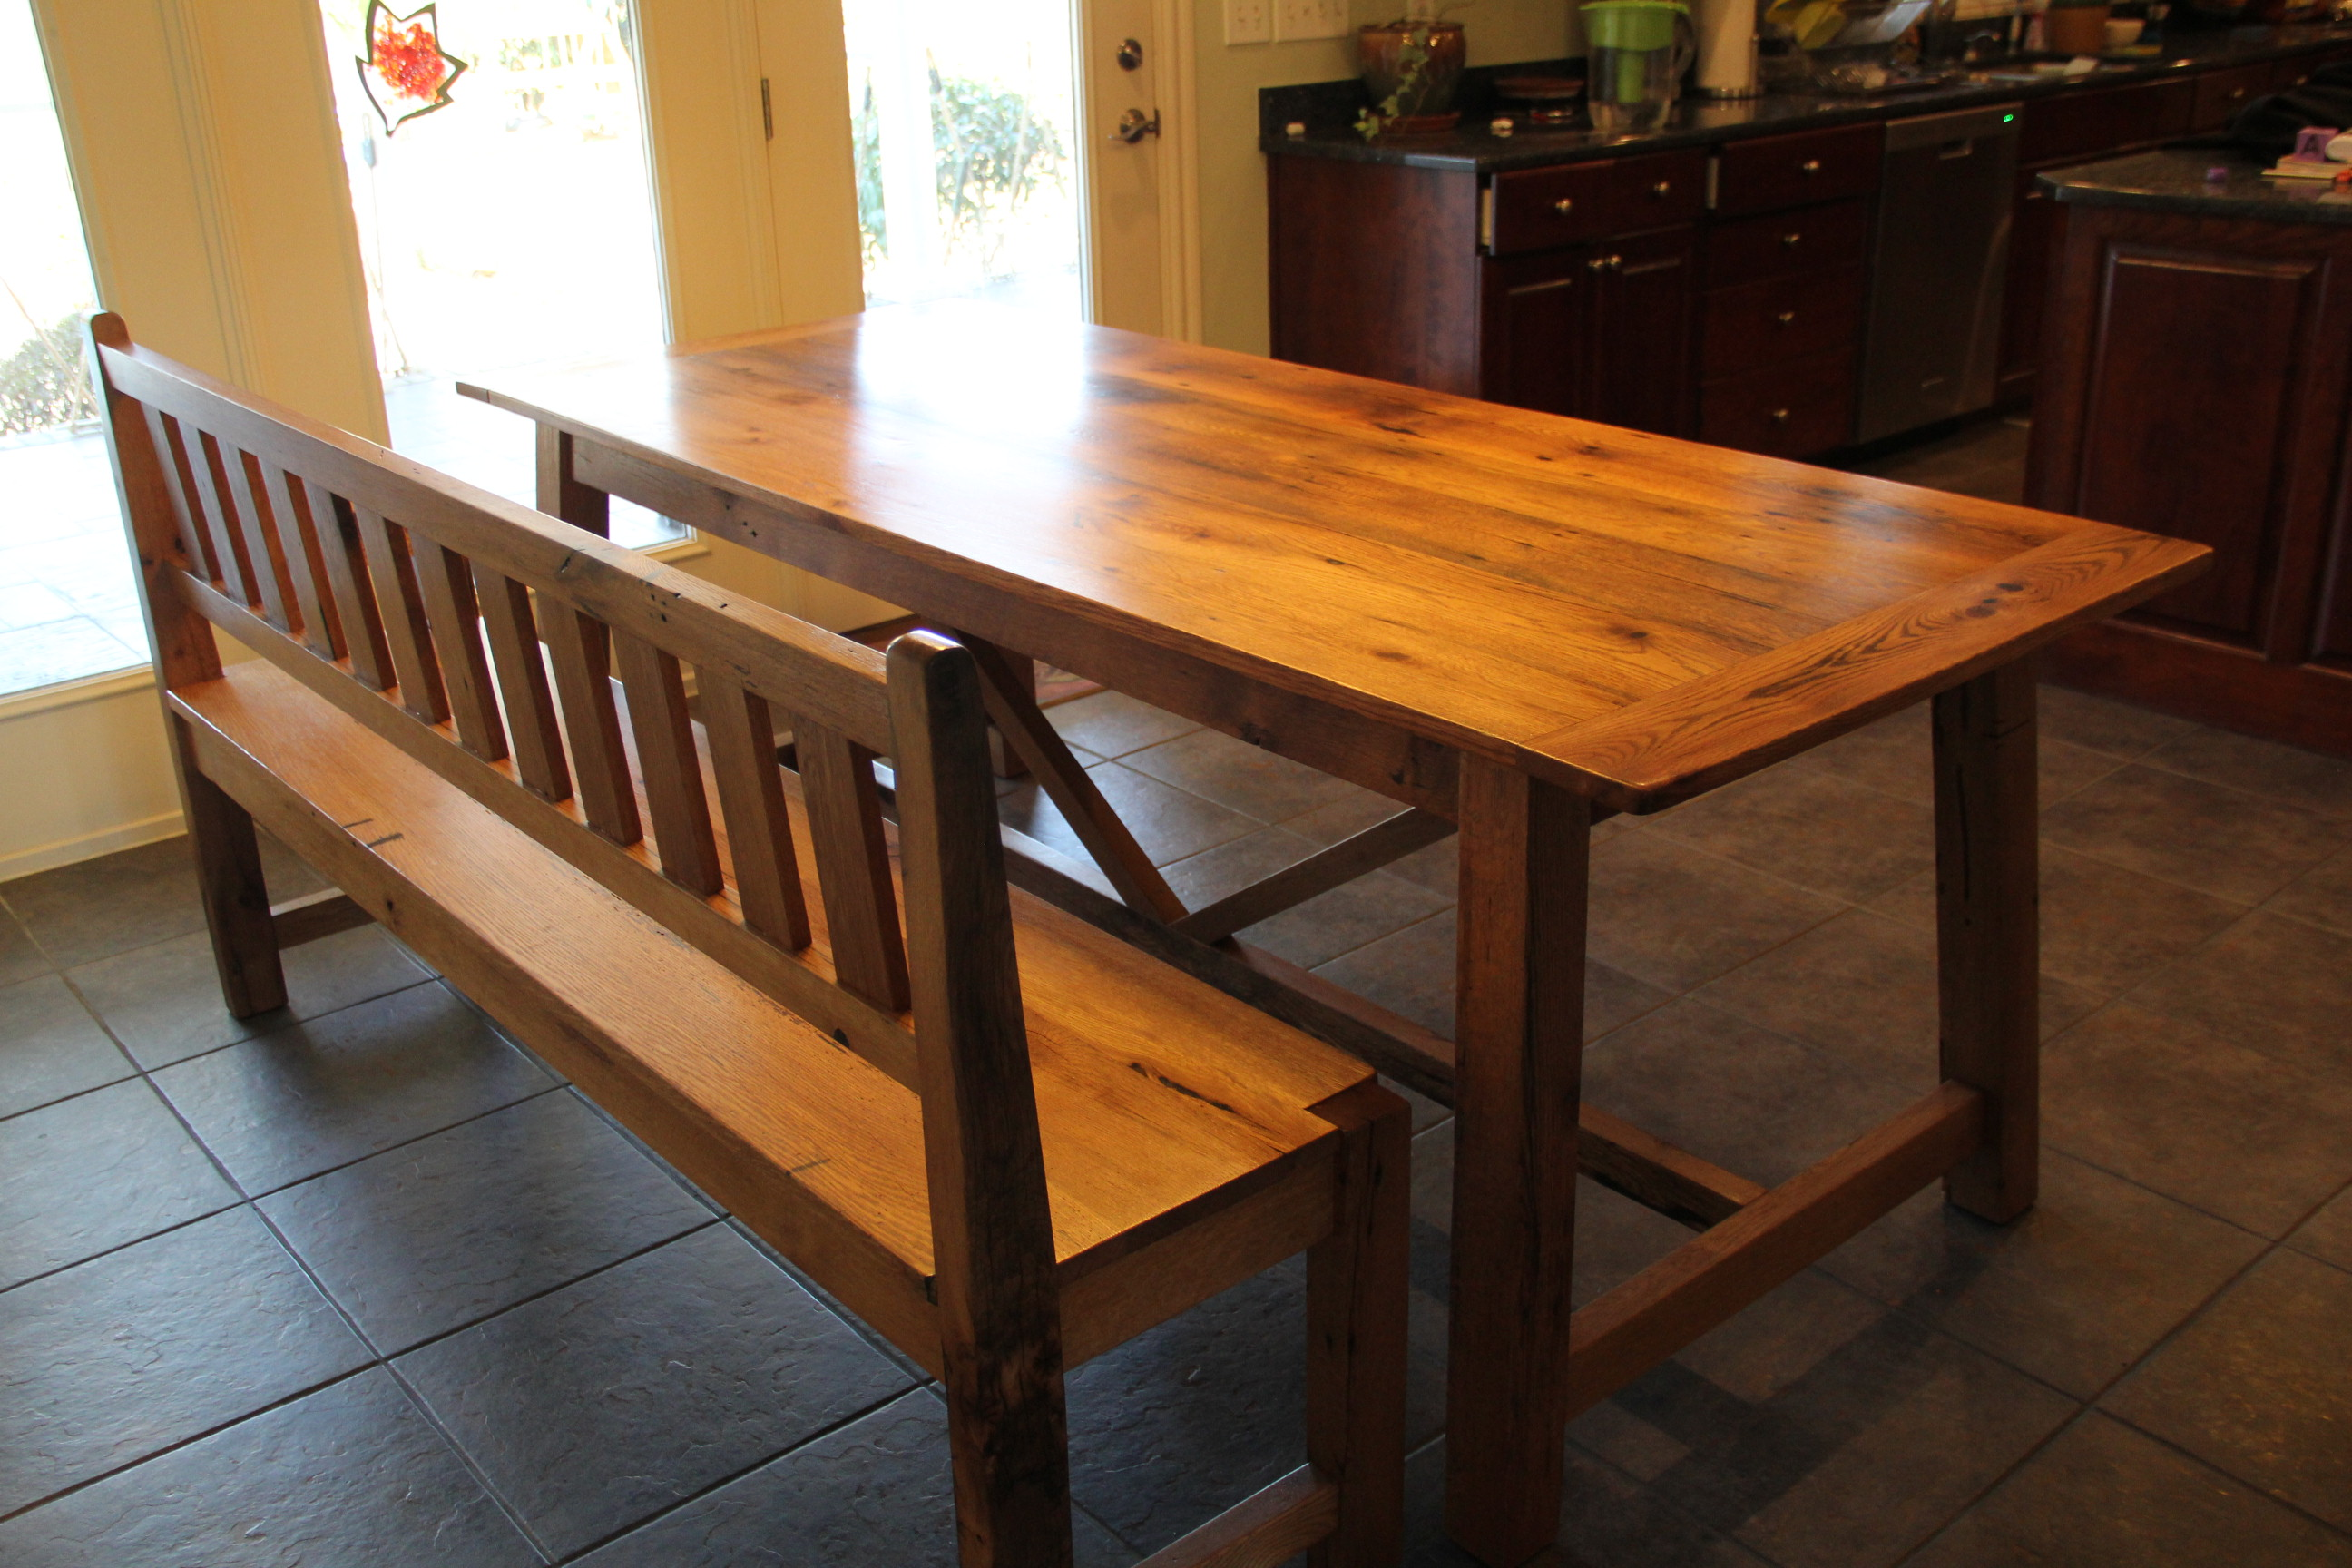 Reclaimed Oak Dining Table Spanish Trestle Oak Dining Table And Bench Reclaimed Wood Furniture